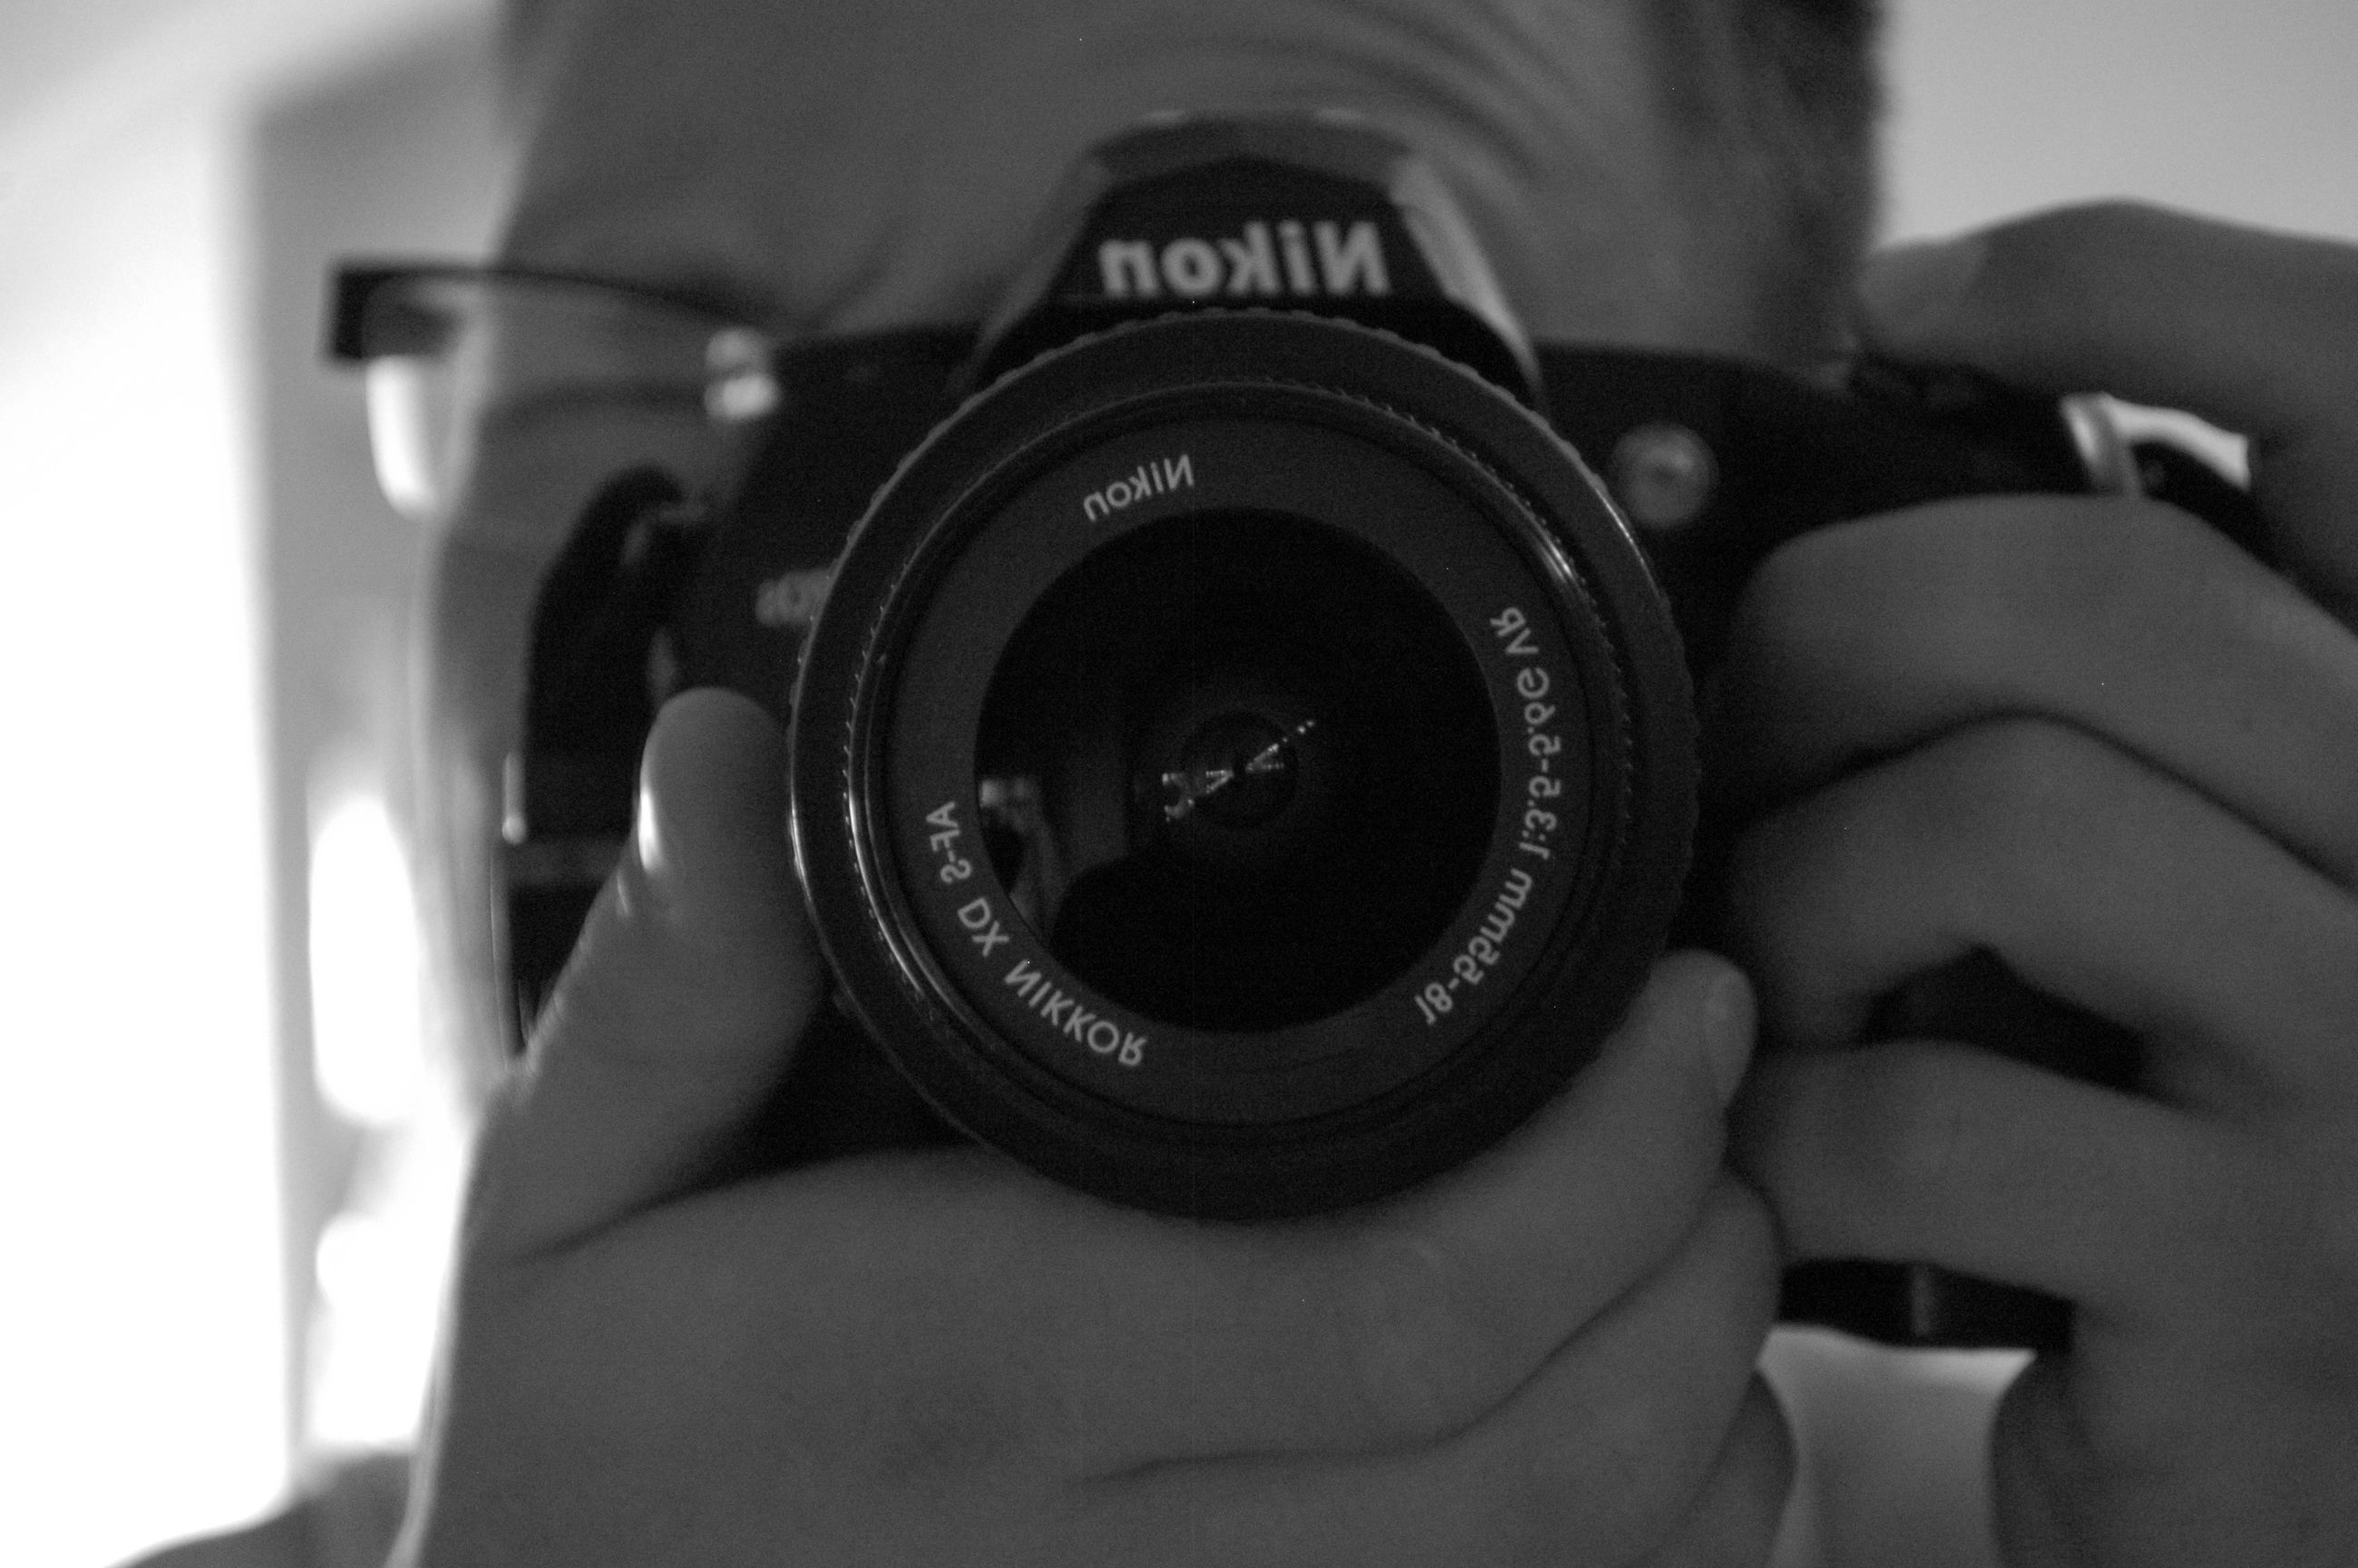 indoors, technology, photography themes, close-up, part of, camera - photographic equipment, focus on foreground, person, cropped, digital camera, lens - optical instrument, photographing, selective focus, old-fashioned, retro styled, holding, reflection